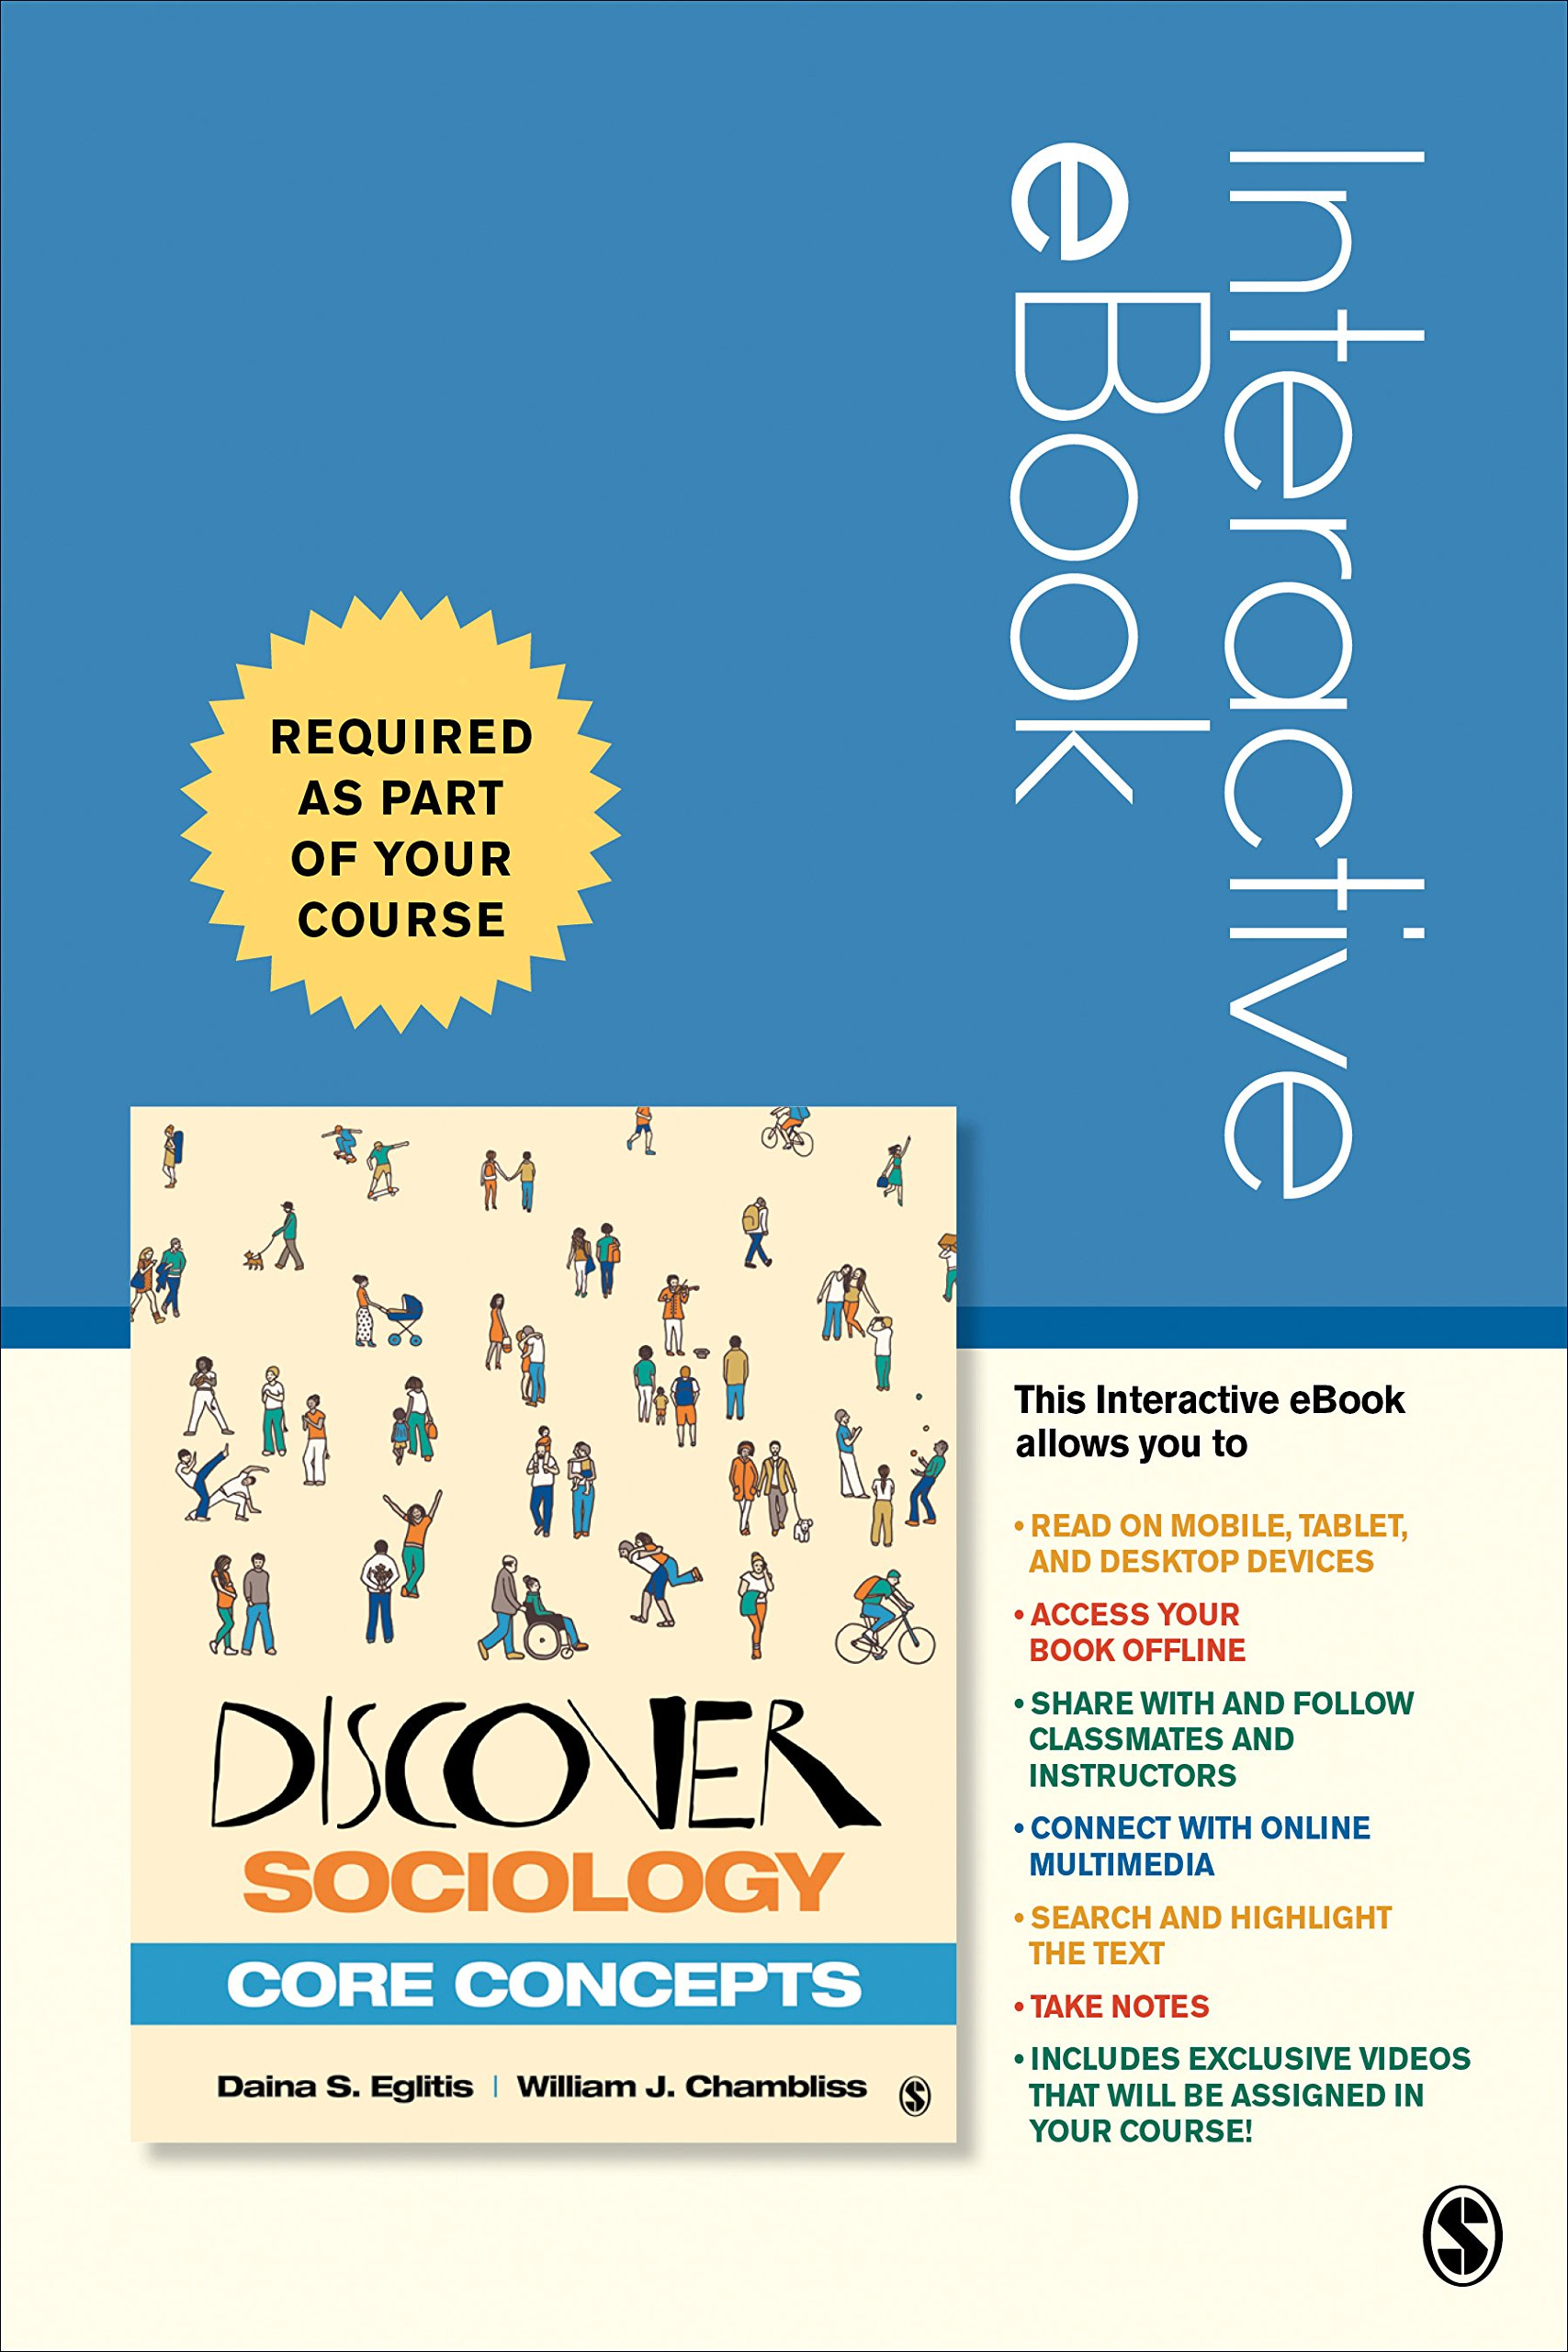 Discover Sociology: Core Concepts Interactive Ebook: Amazon.es ...